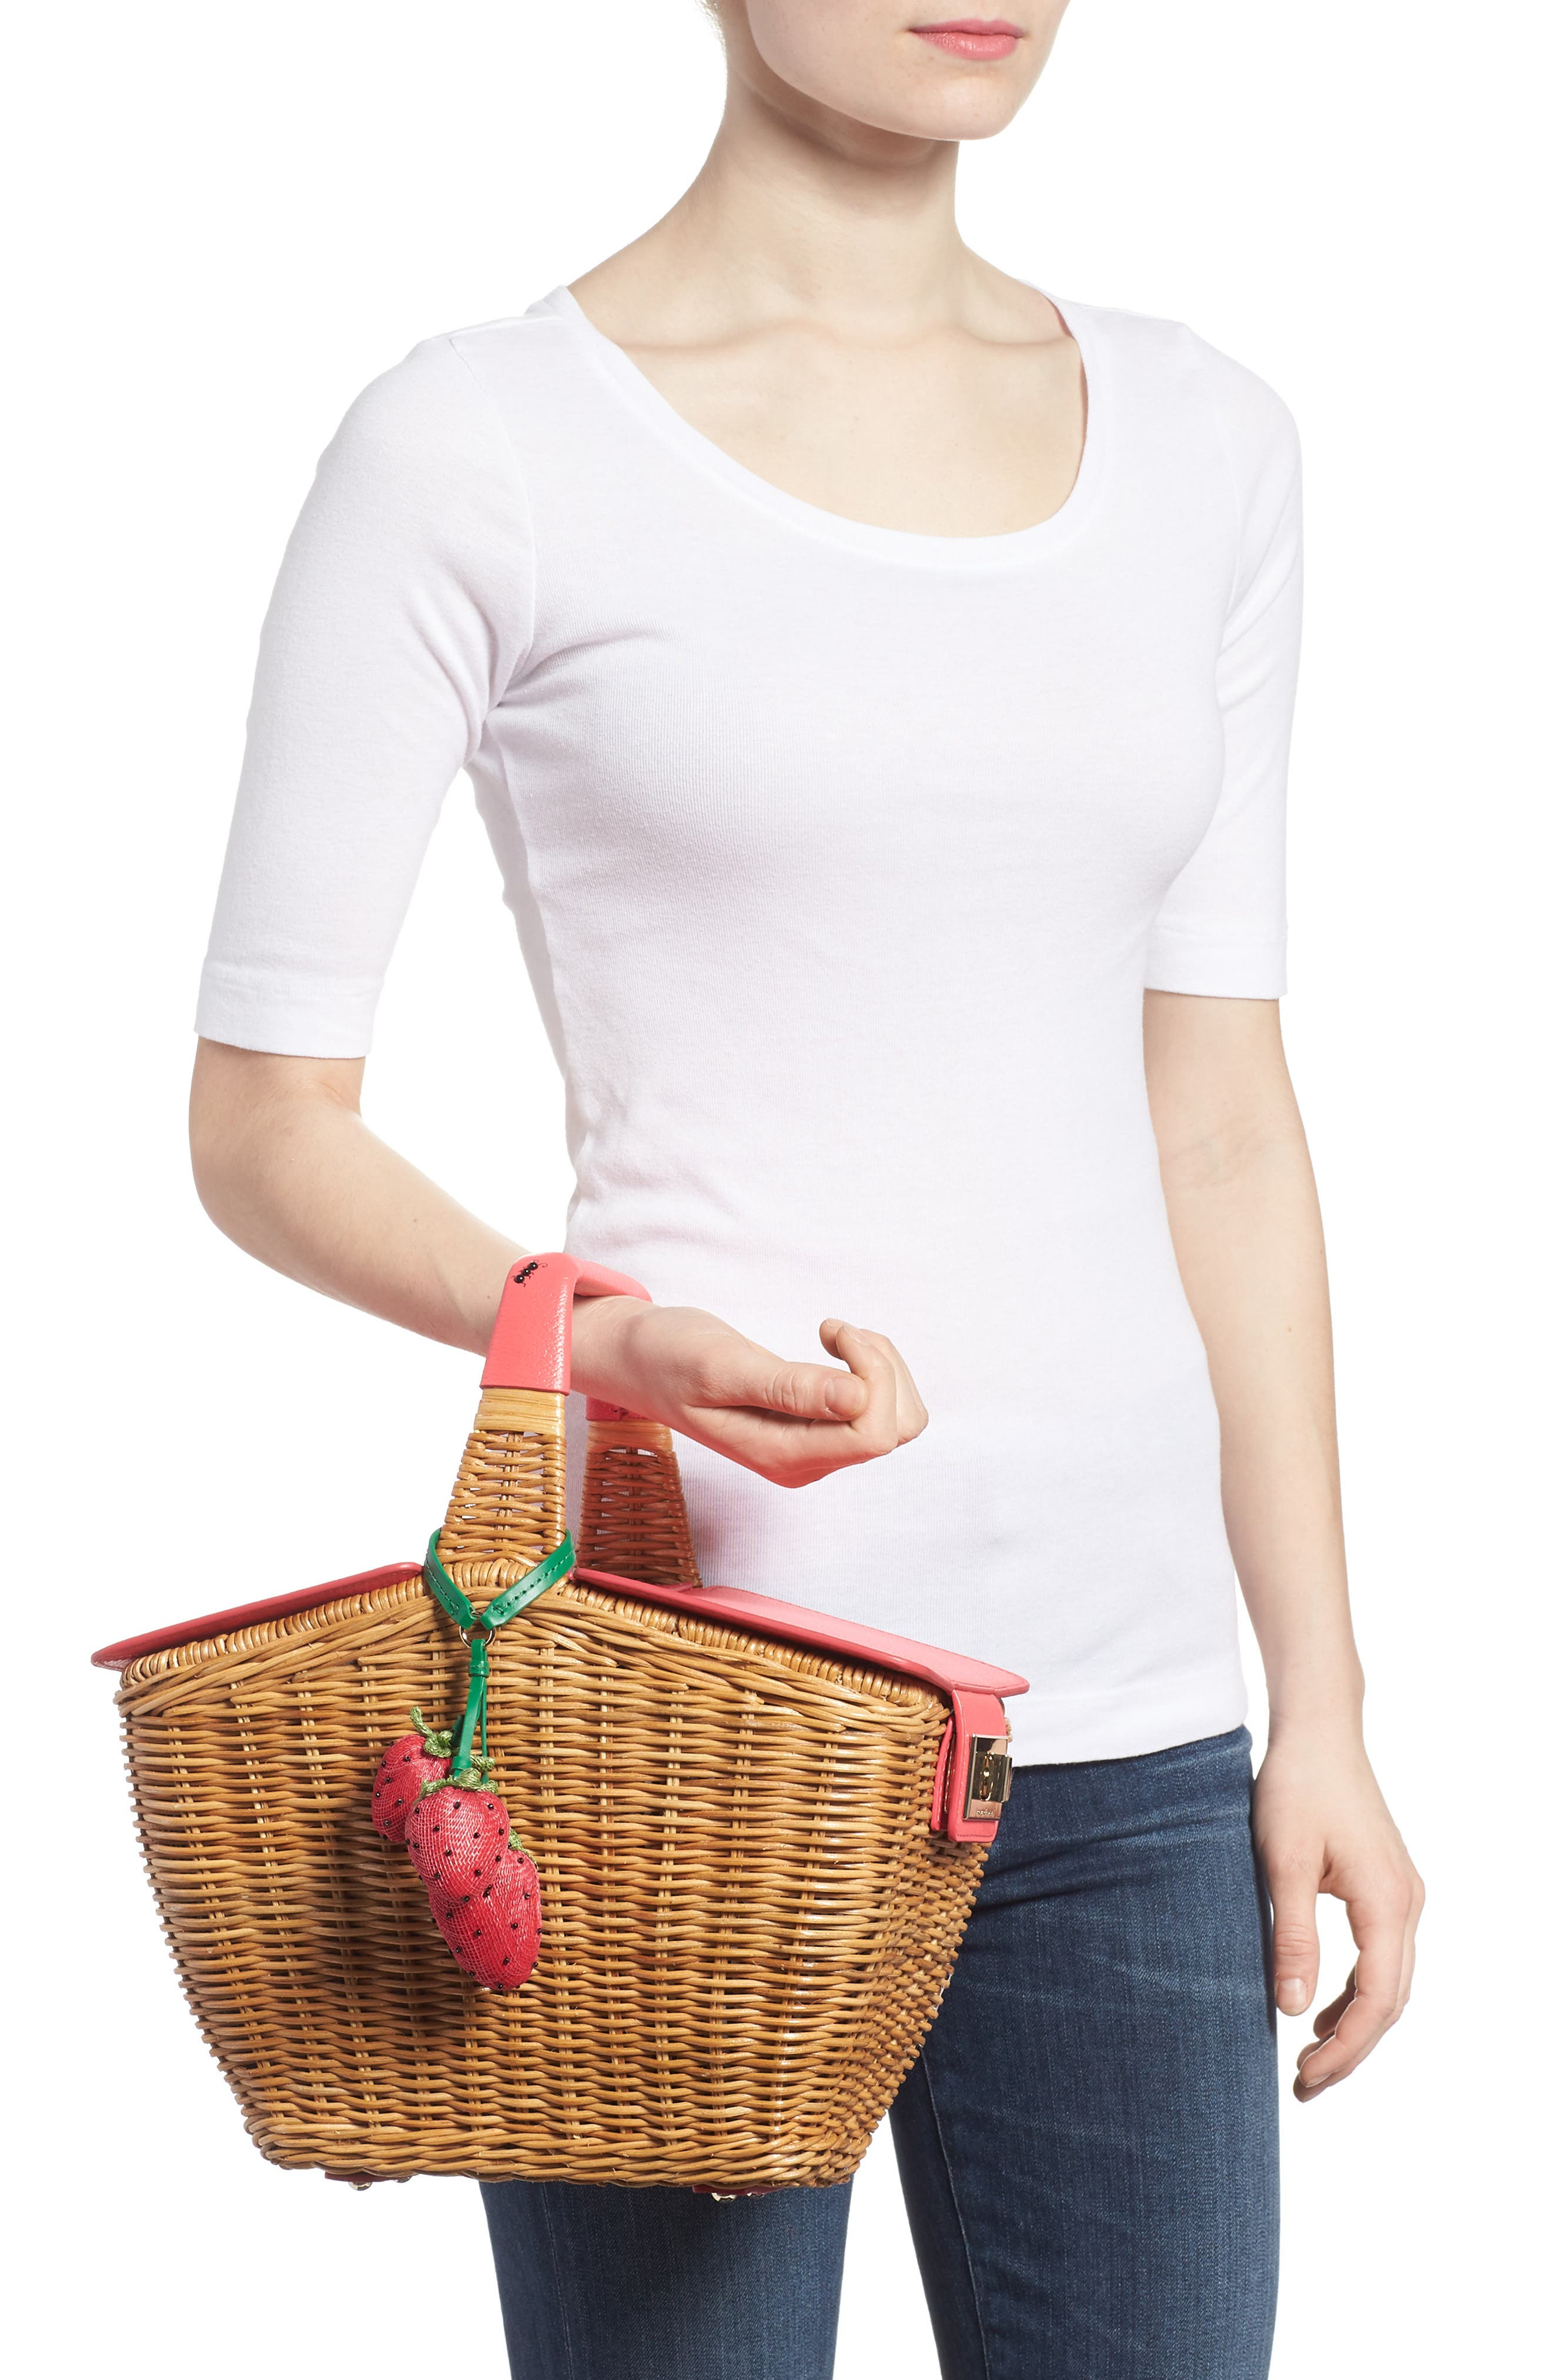 picnic perfect 3D wicker picnic basket,                             Alternate thumbnail 2, color,                             Multi